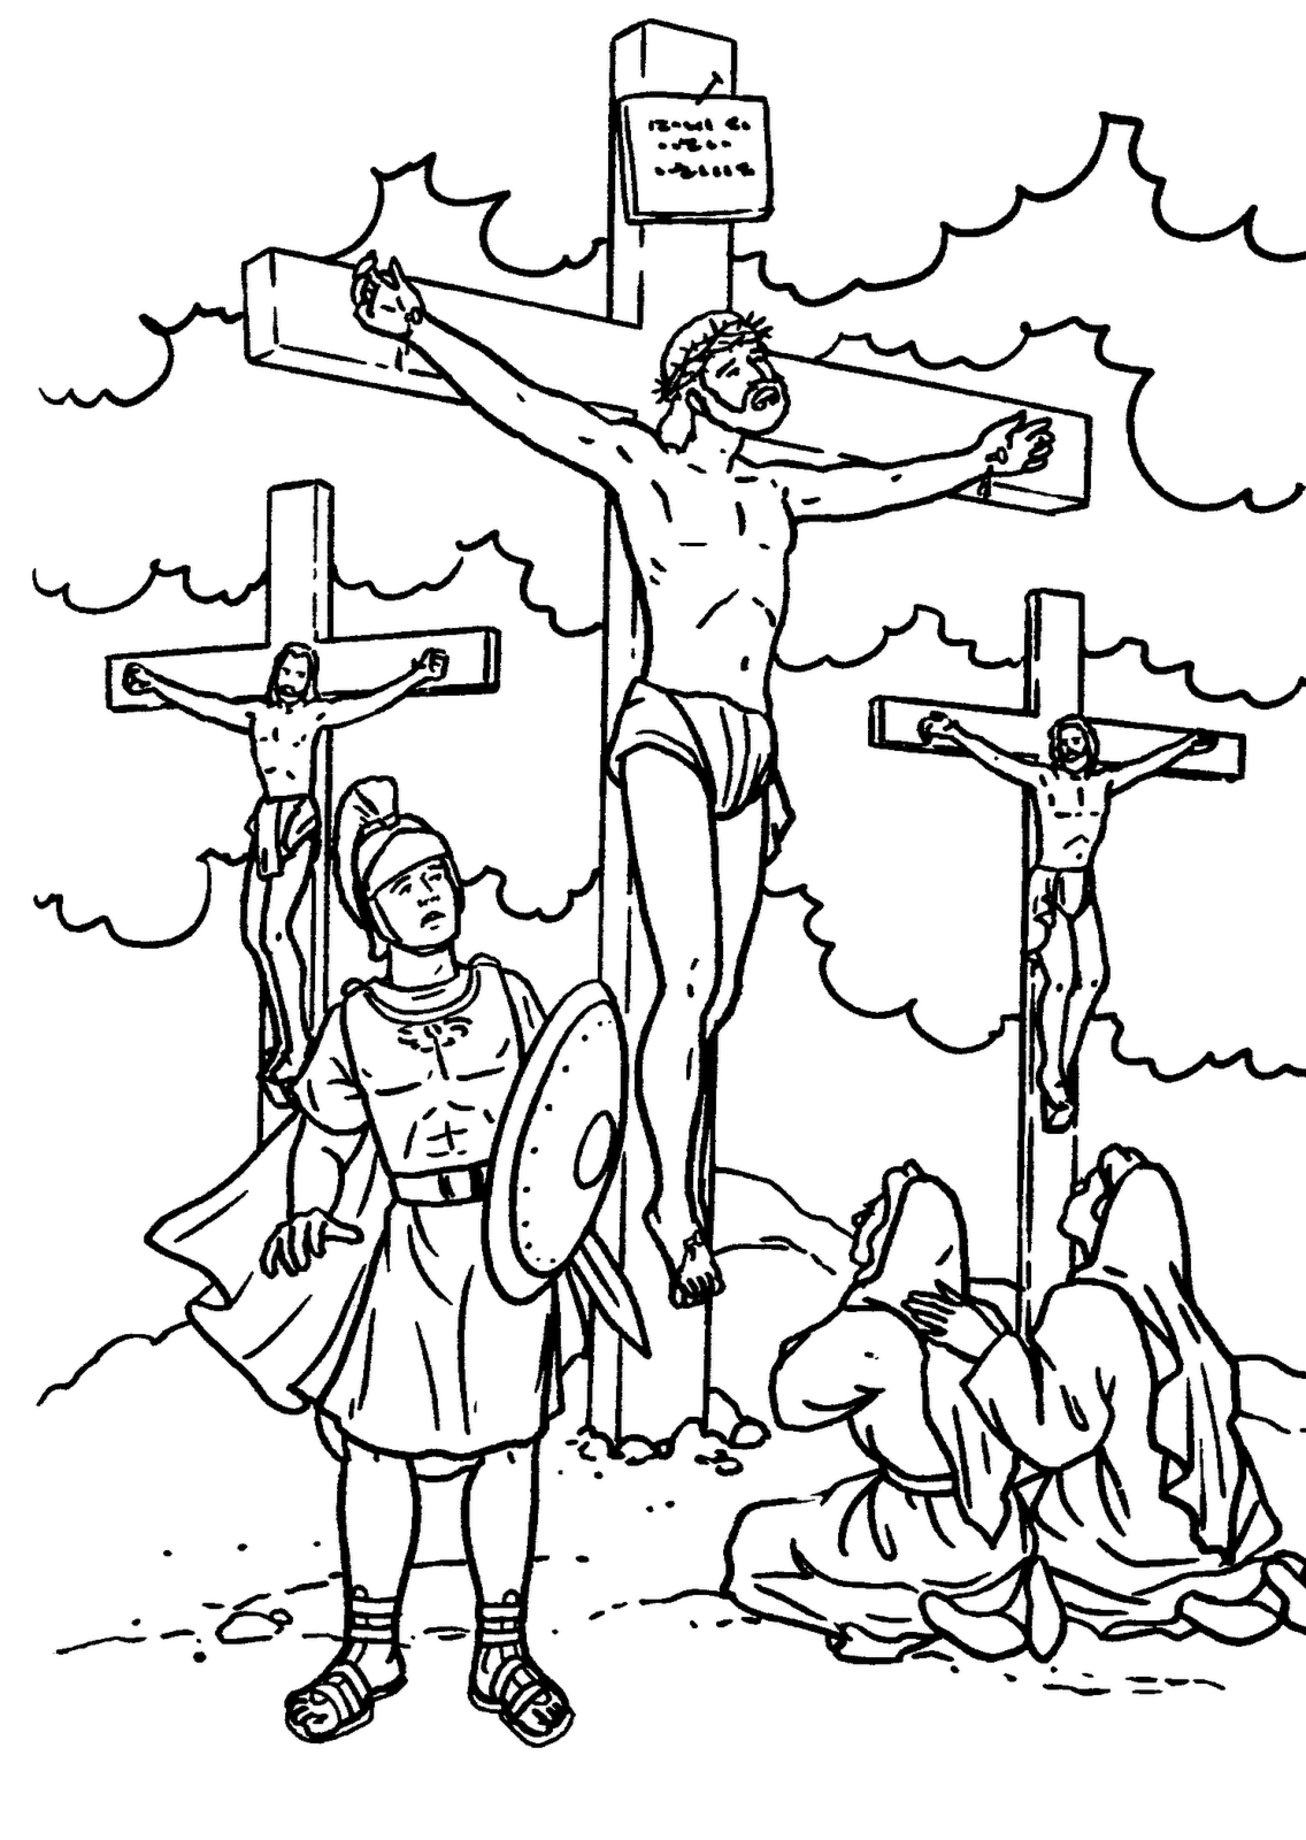 1306x1840 Enjoyable Cross Coloring Pages To Print For Kids Adults